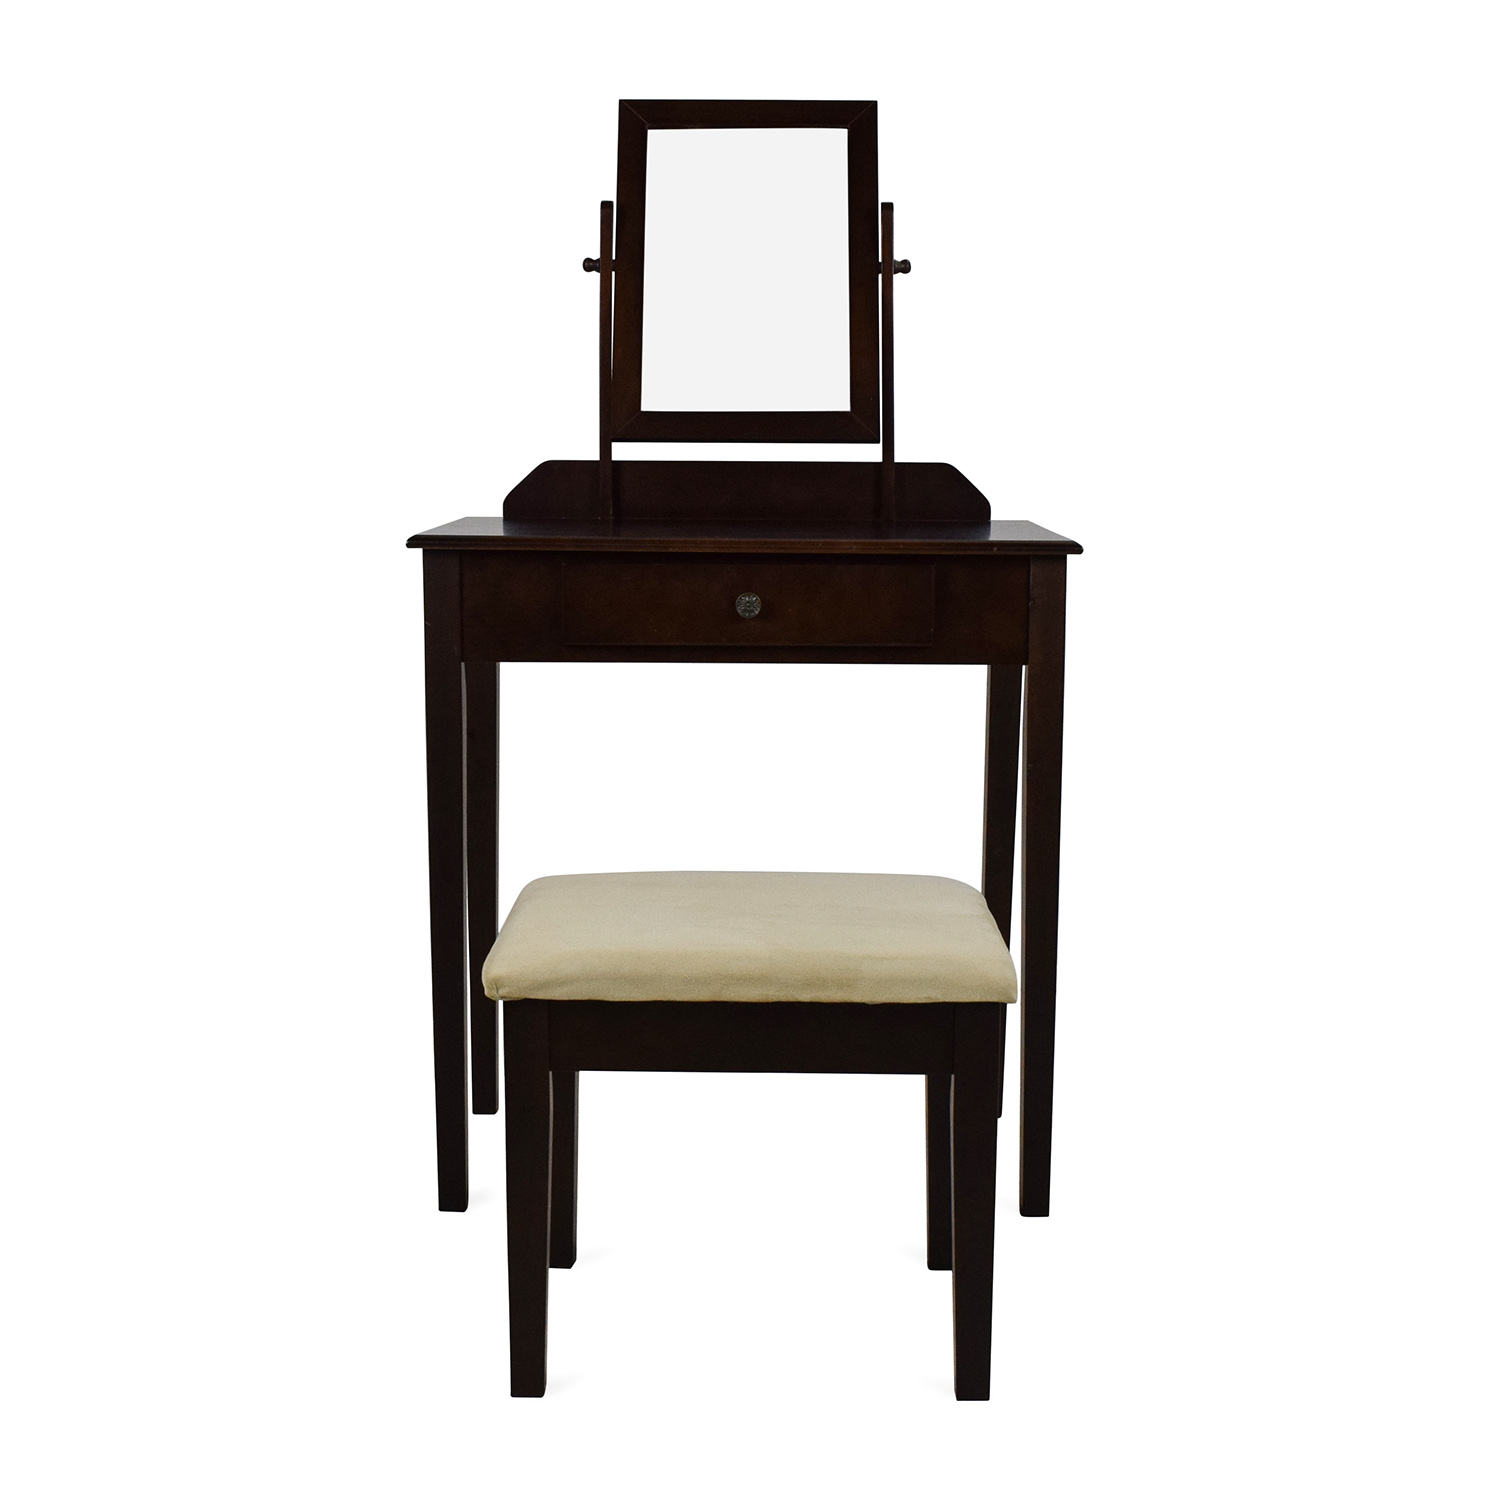 Wooden Vanity Chair 83 Off Wooden Vanity With Stool Tables